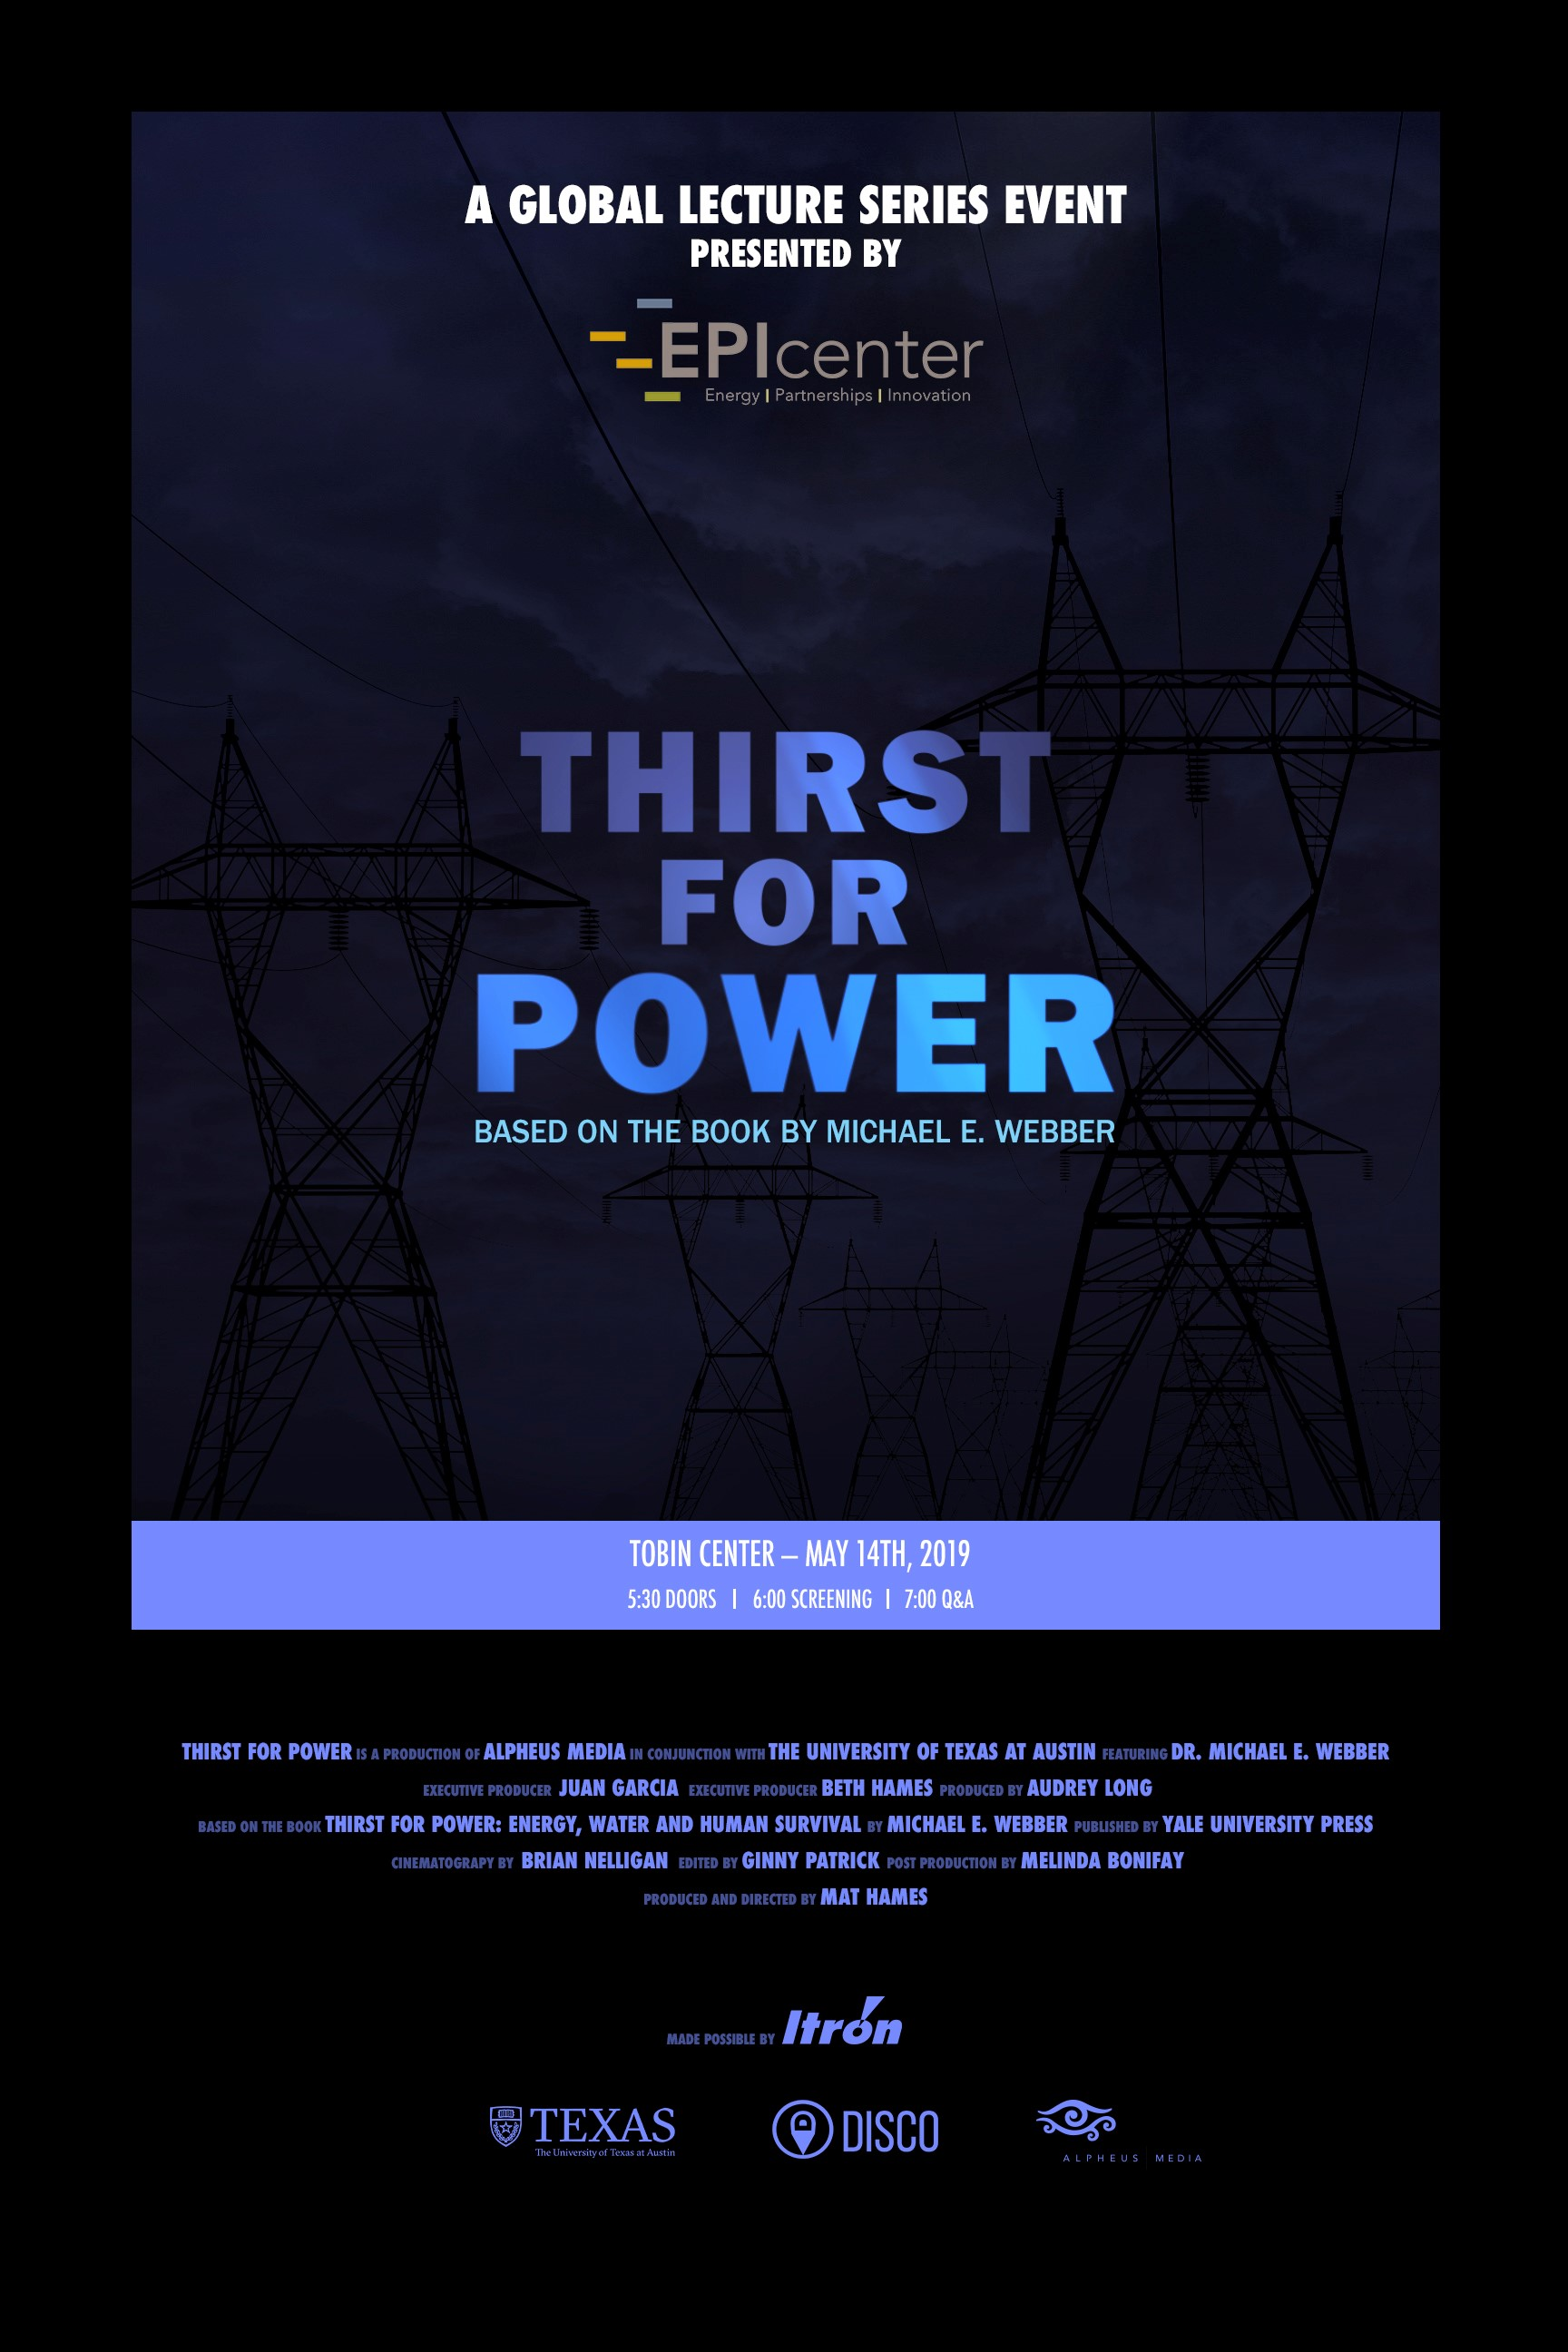 ThirstForPower_POSTER_SAN ANTONIO_PREVIEW SCREENING.jpg